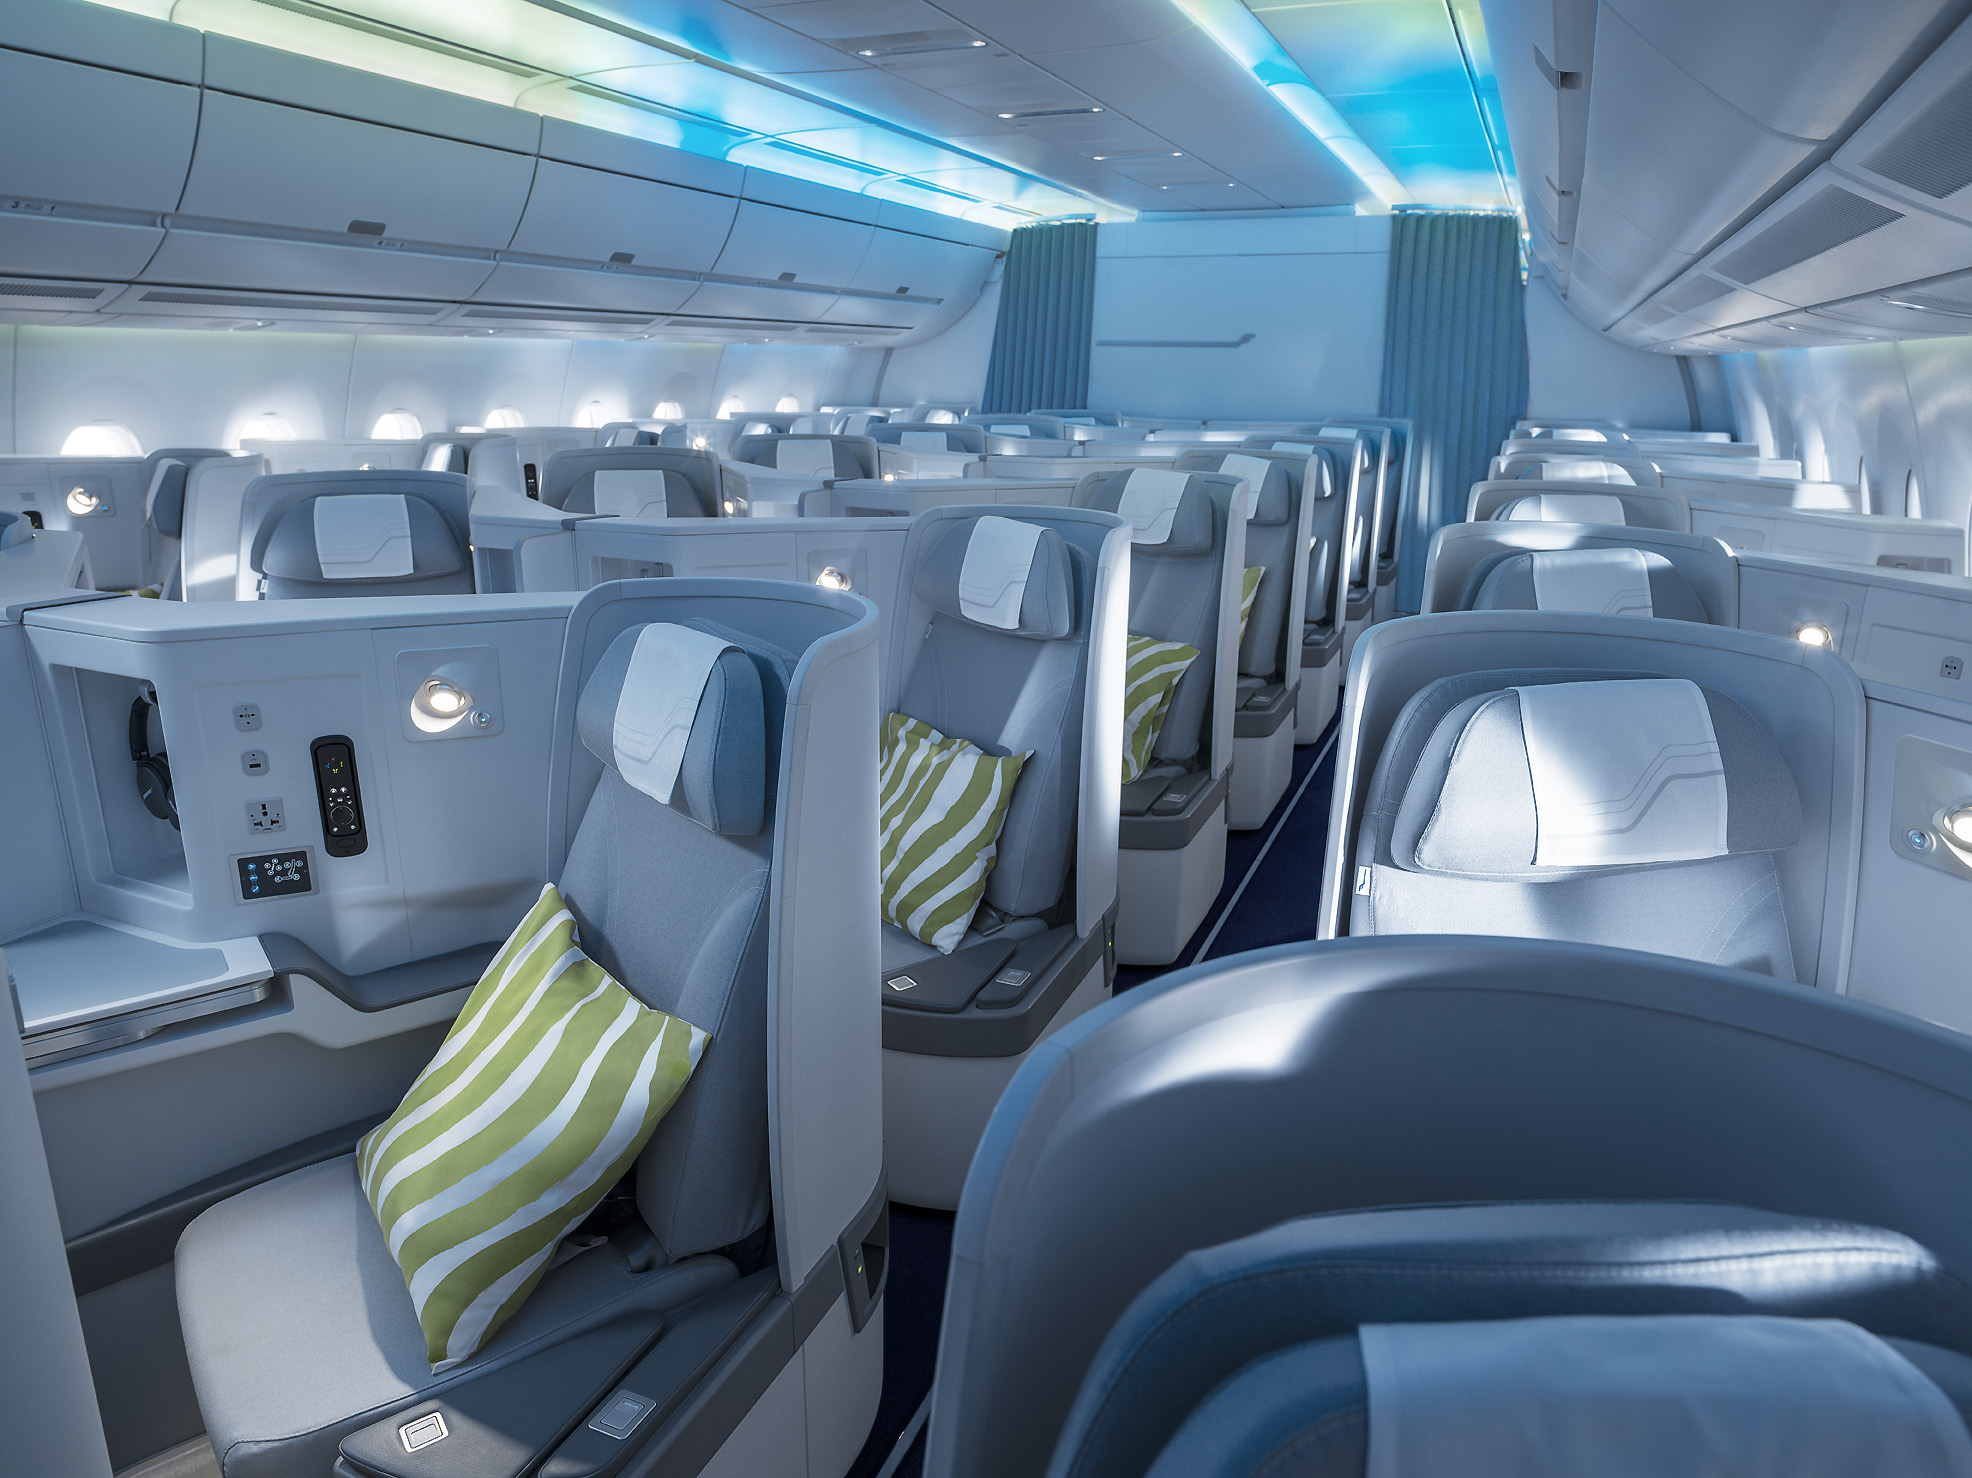 finnair northern lights theme business class cabin